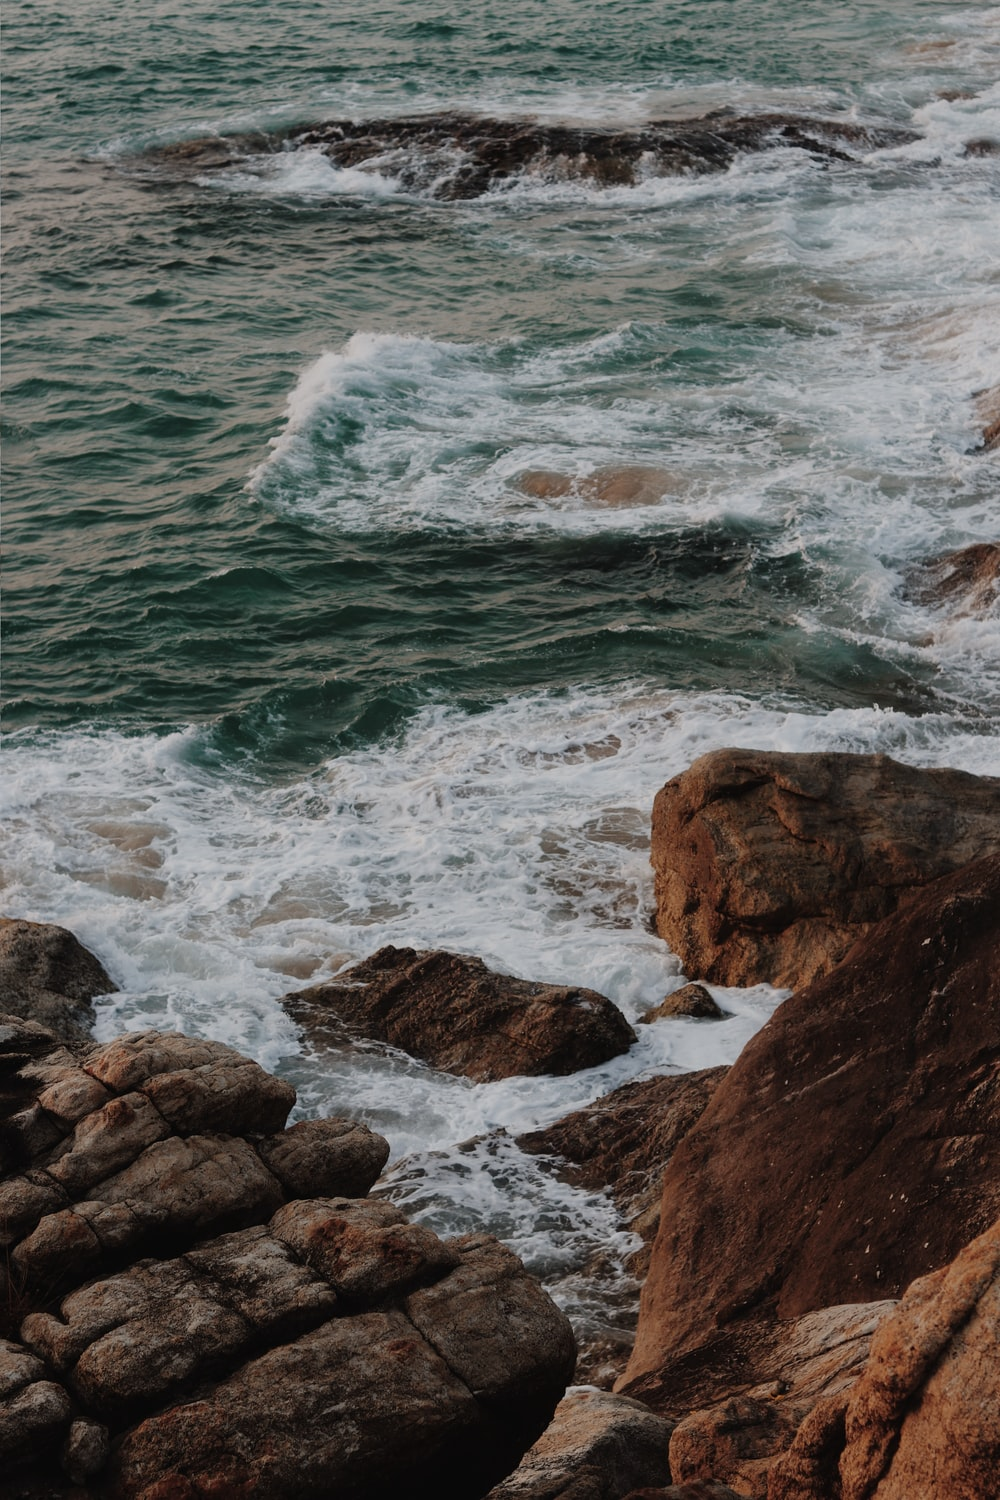 brown rocky shore with ocean waves crashing on rocks during daytime